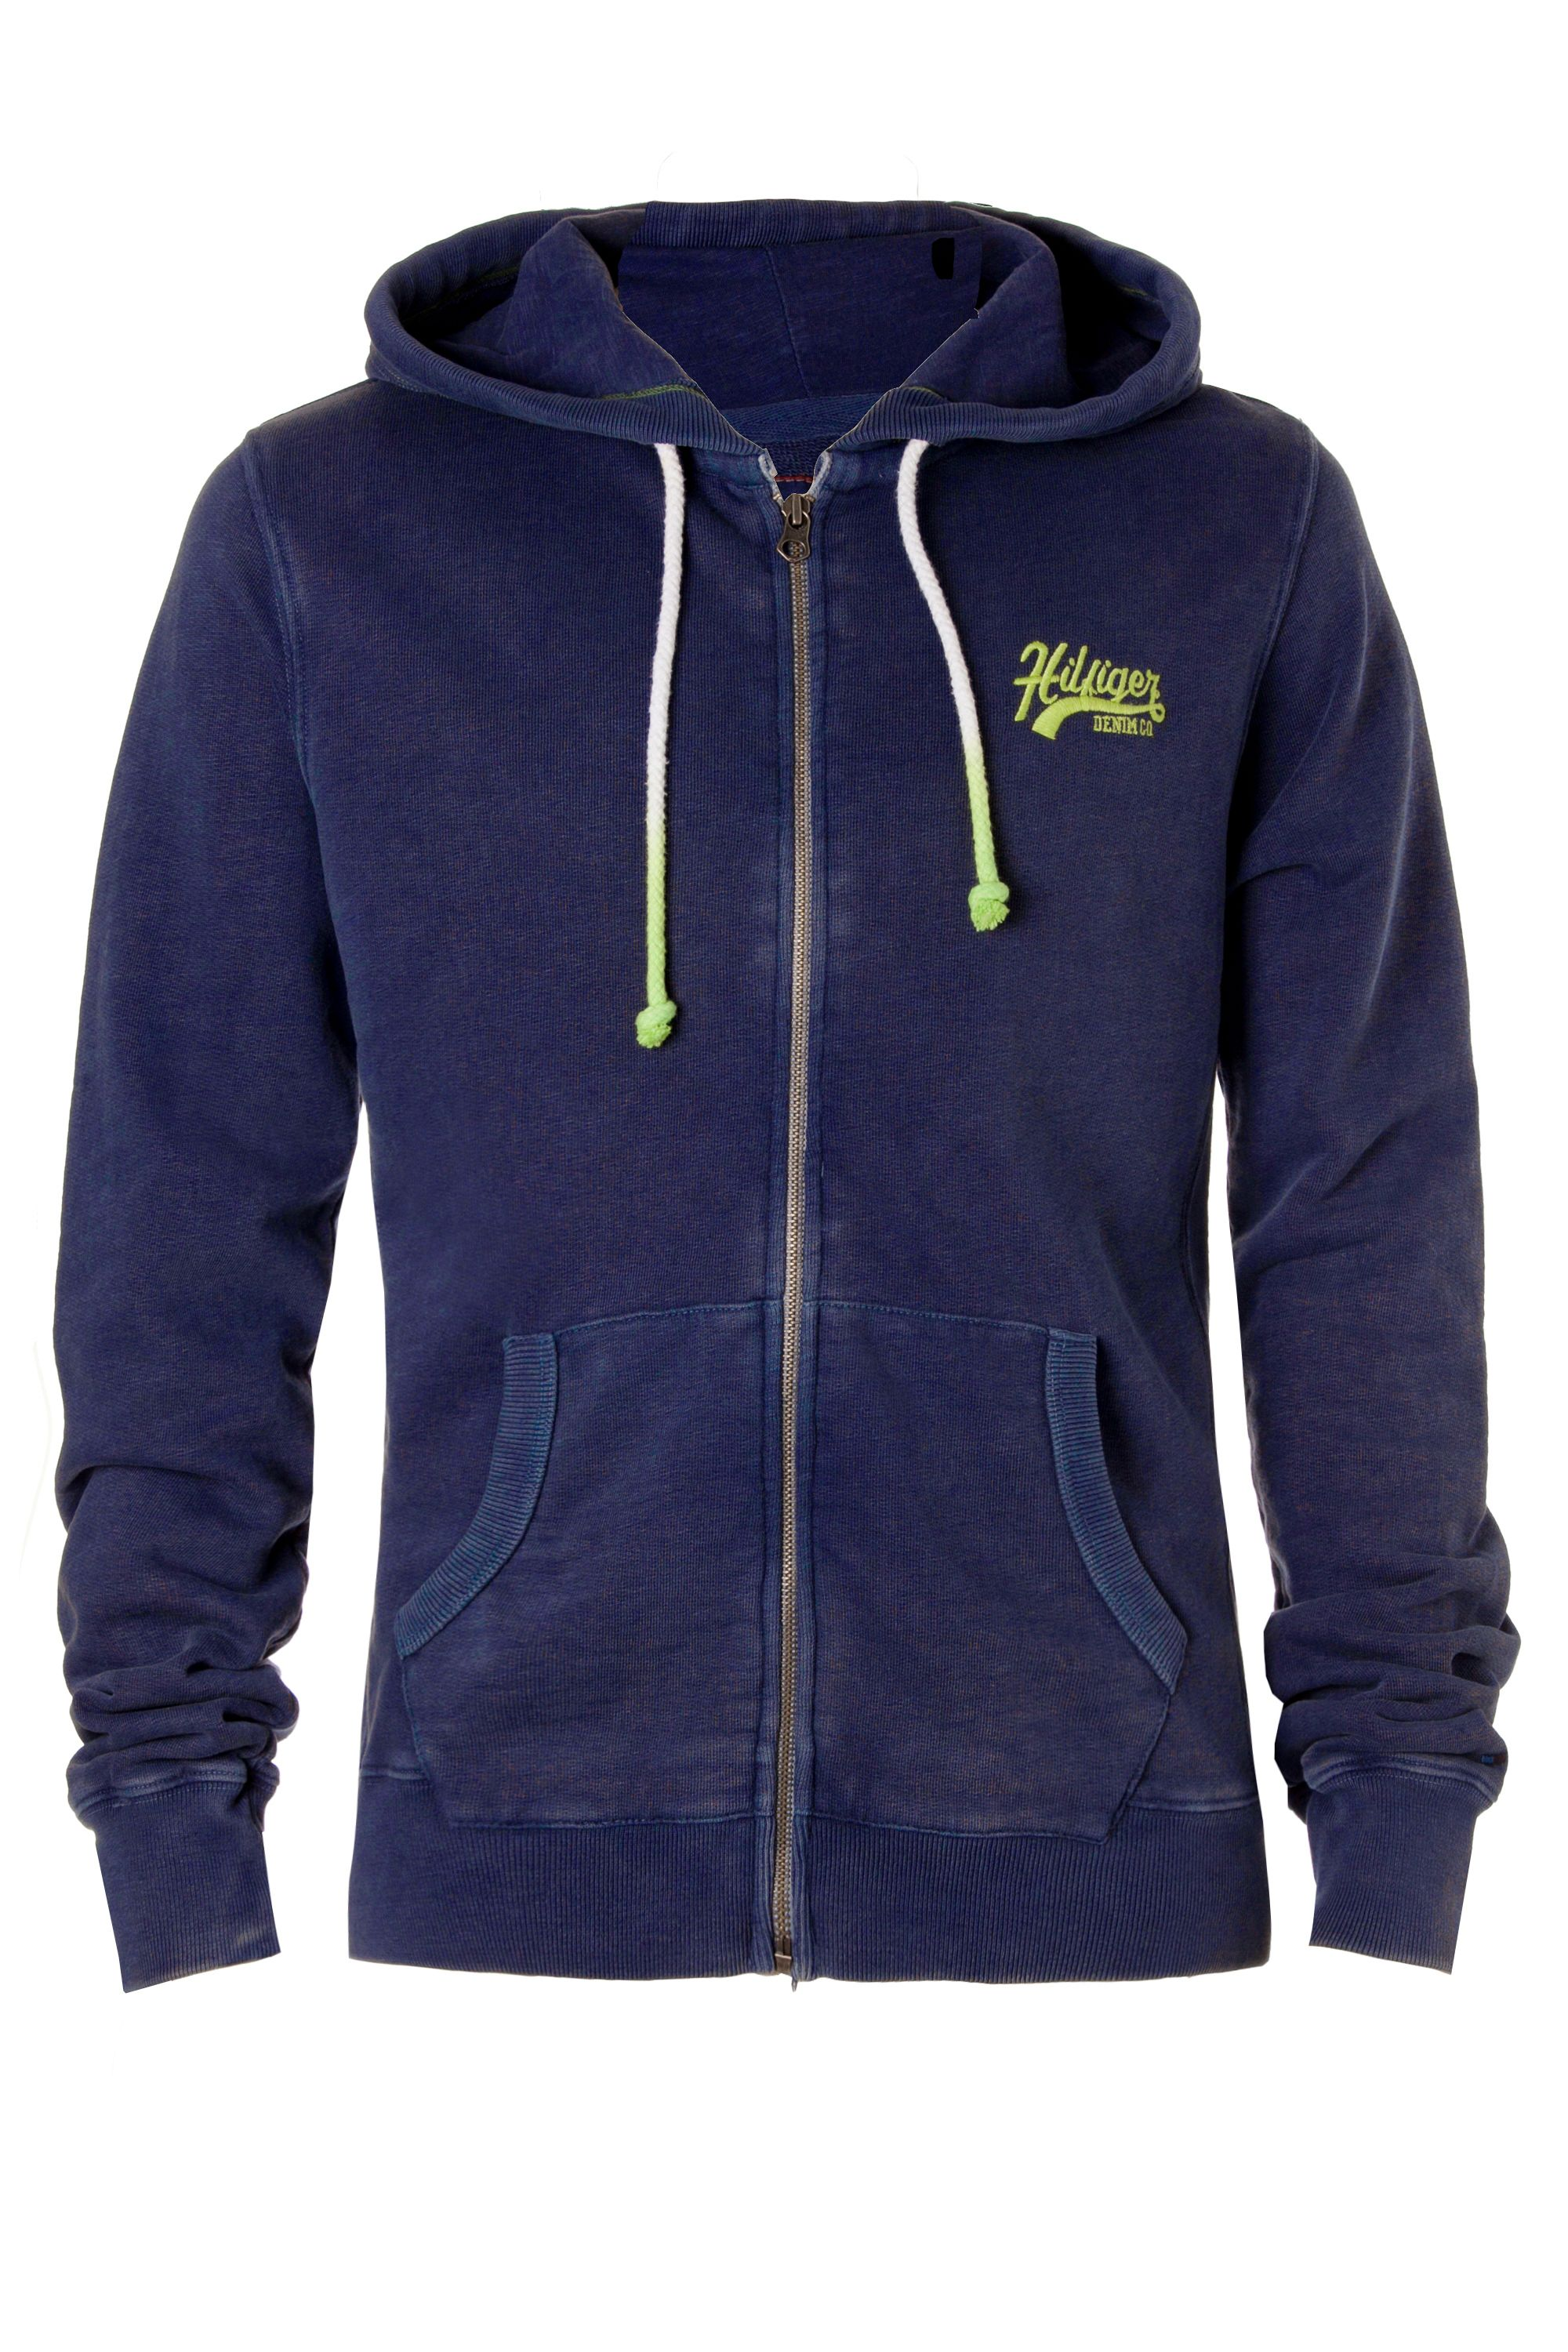 Hollywood hooded zip-through